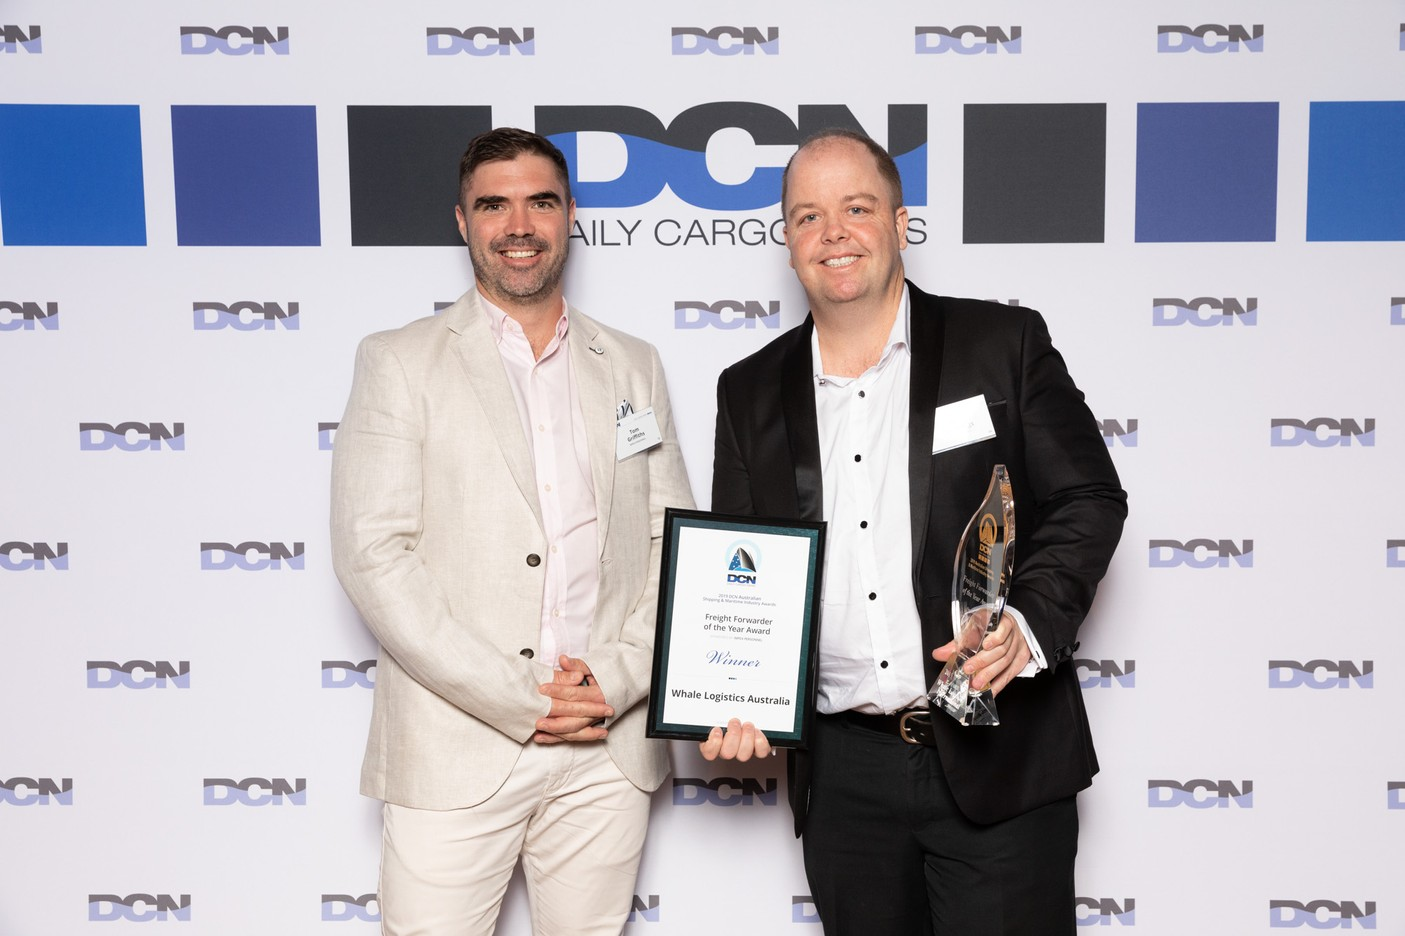 Whale Logistics Australia as Freight Forwarder of the Year - DCN Awards